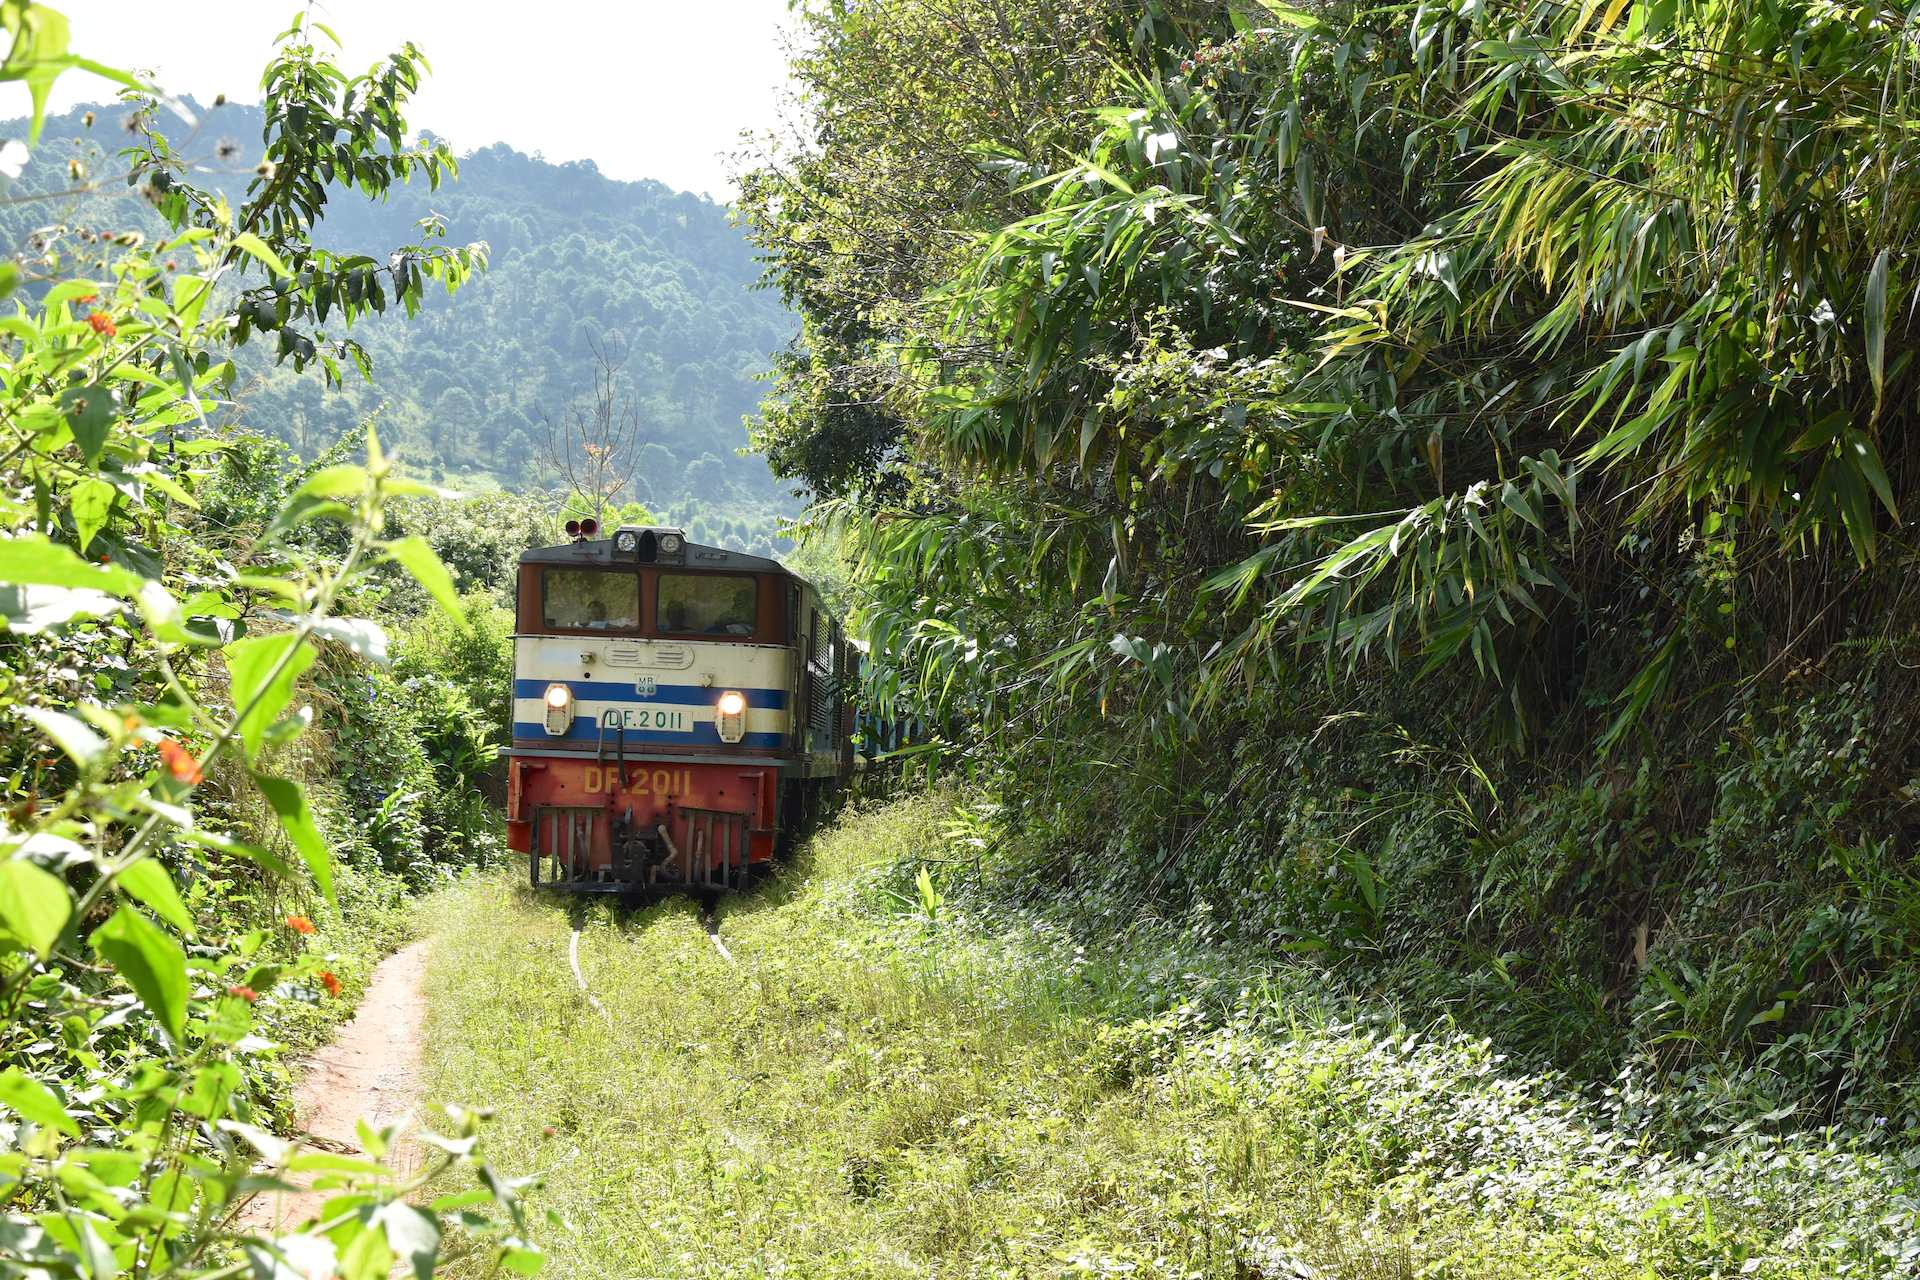 The slow train to Inle Lake